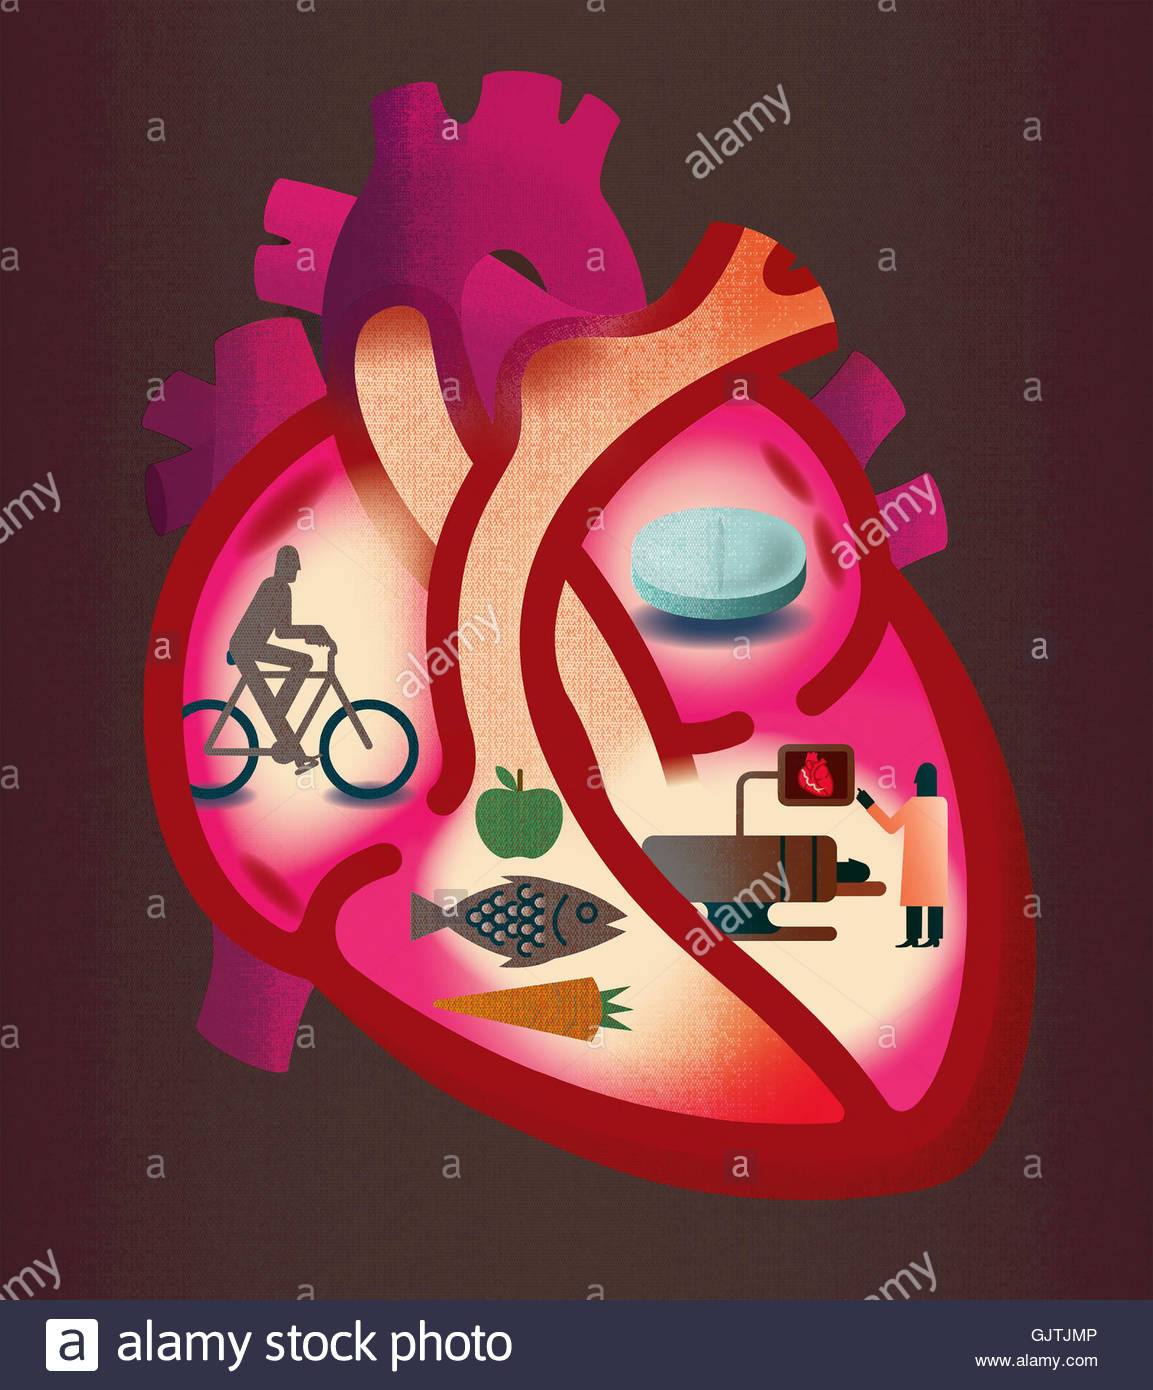 Cross section of heart contrasting heart disease and healthy lifestyle - Stock Image